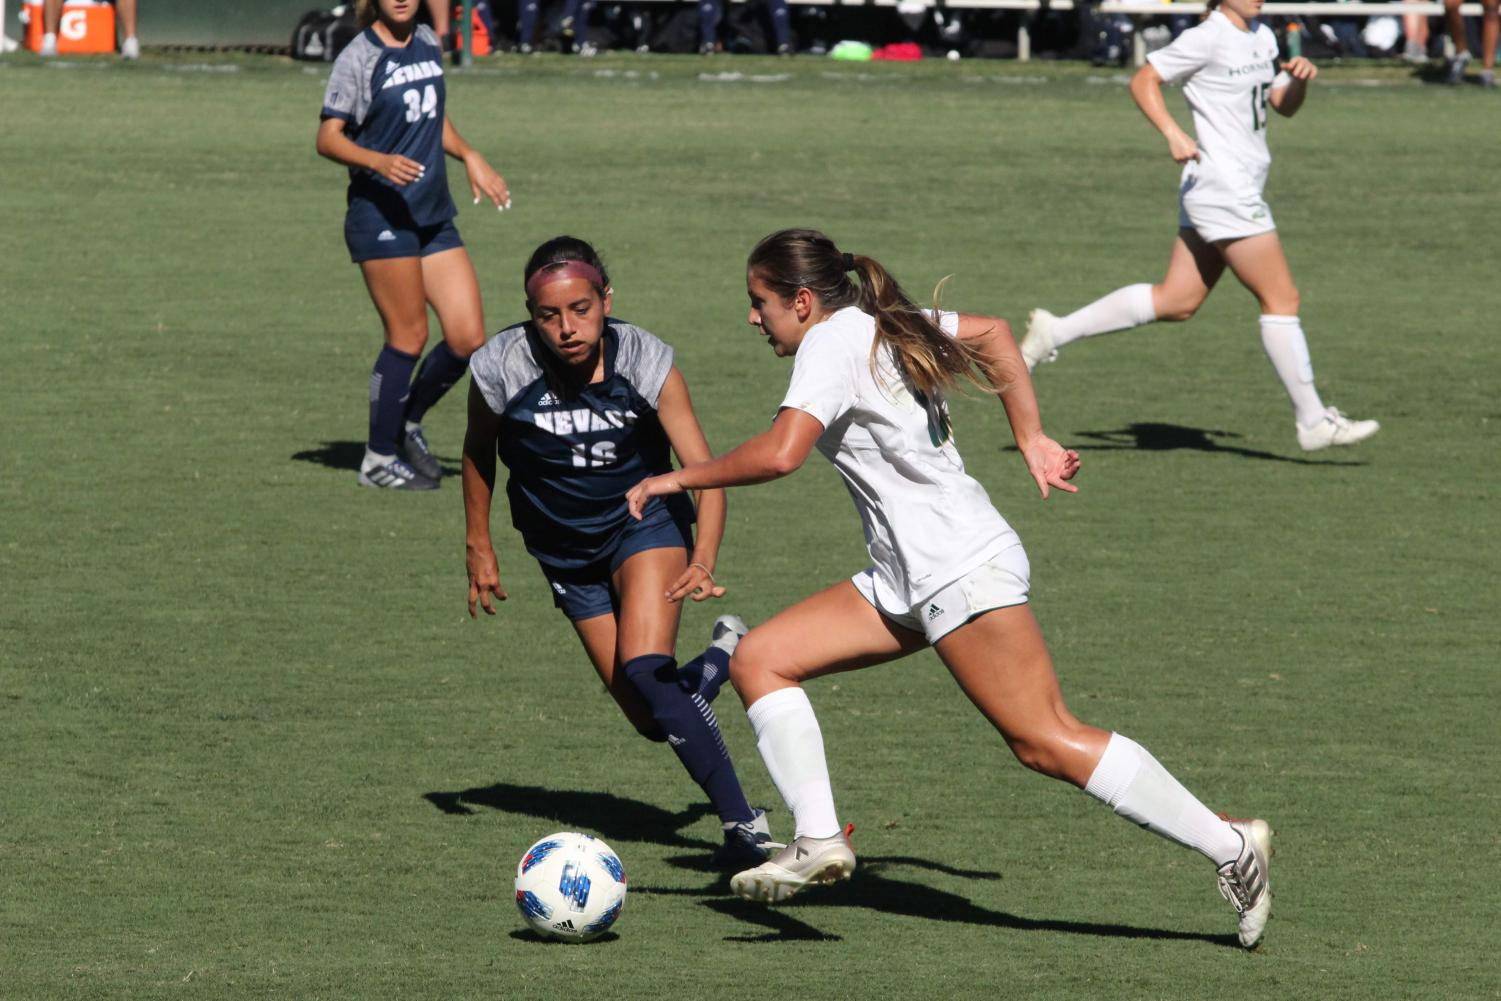 Sacramento State Hornet forward Julia Herrera dribbles the ball past Nevada Wolf Pack forward Analyse Talavera. The Hornets won their first match of the year against Nevada 3-2 on Sept. 7 at the Hornet Field.